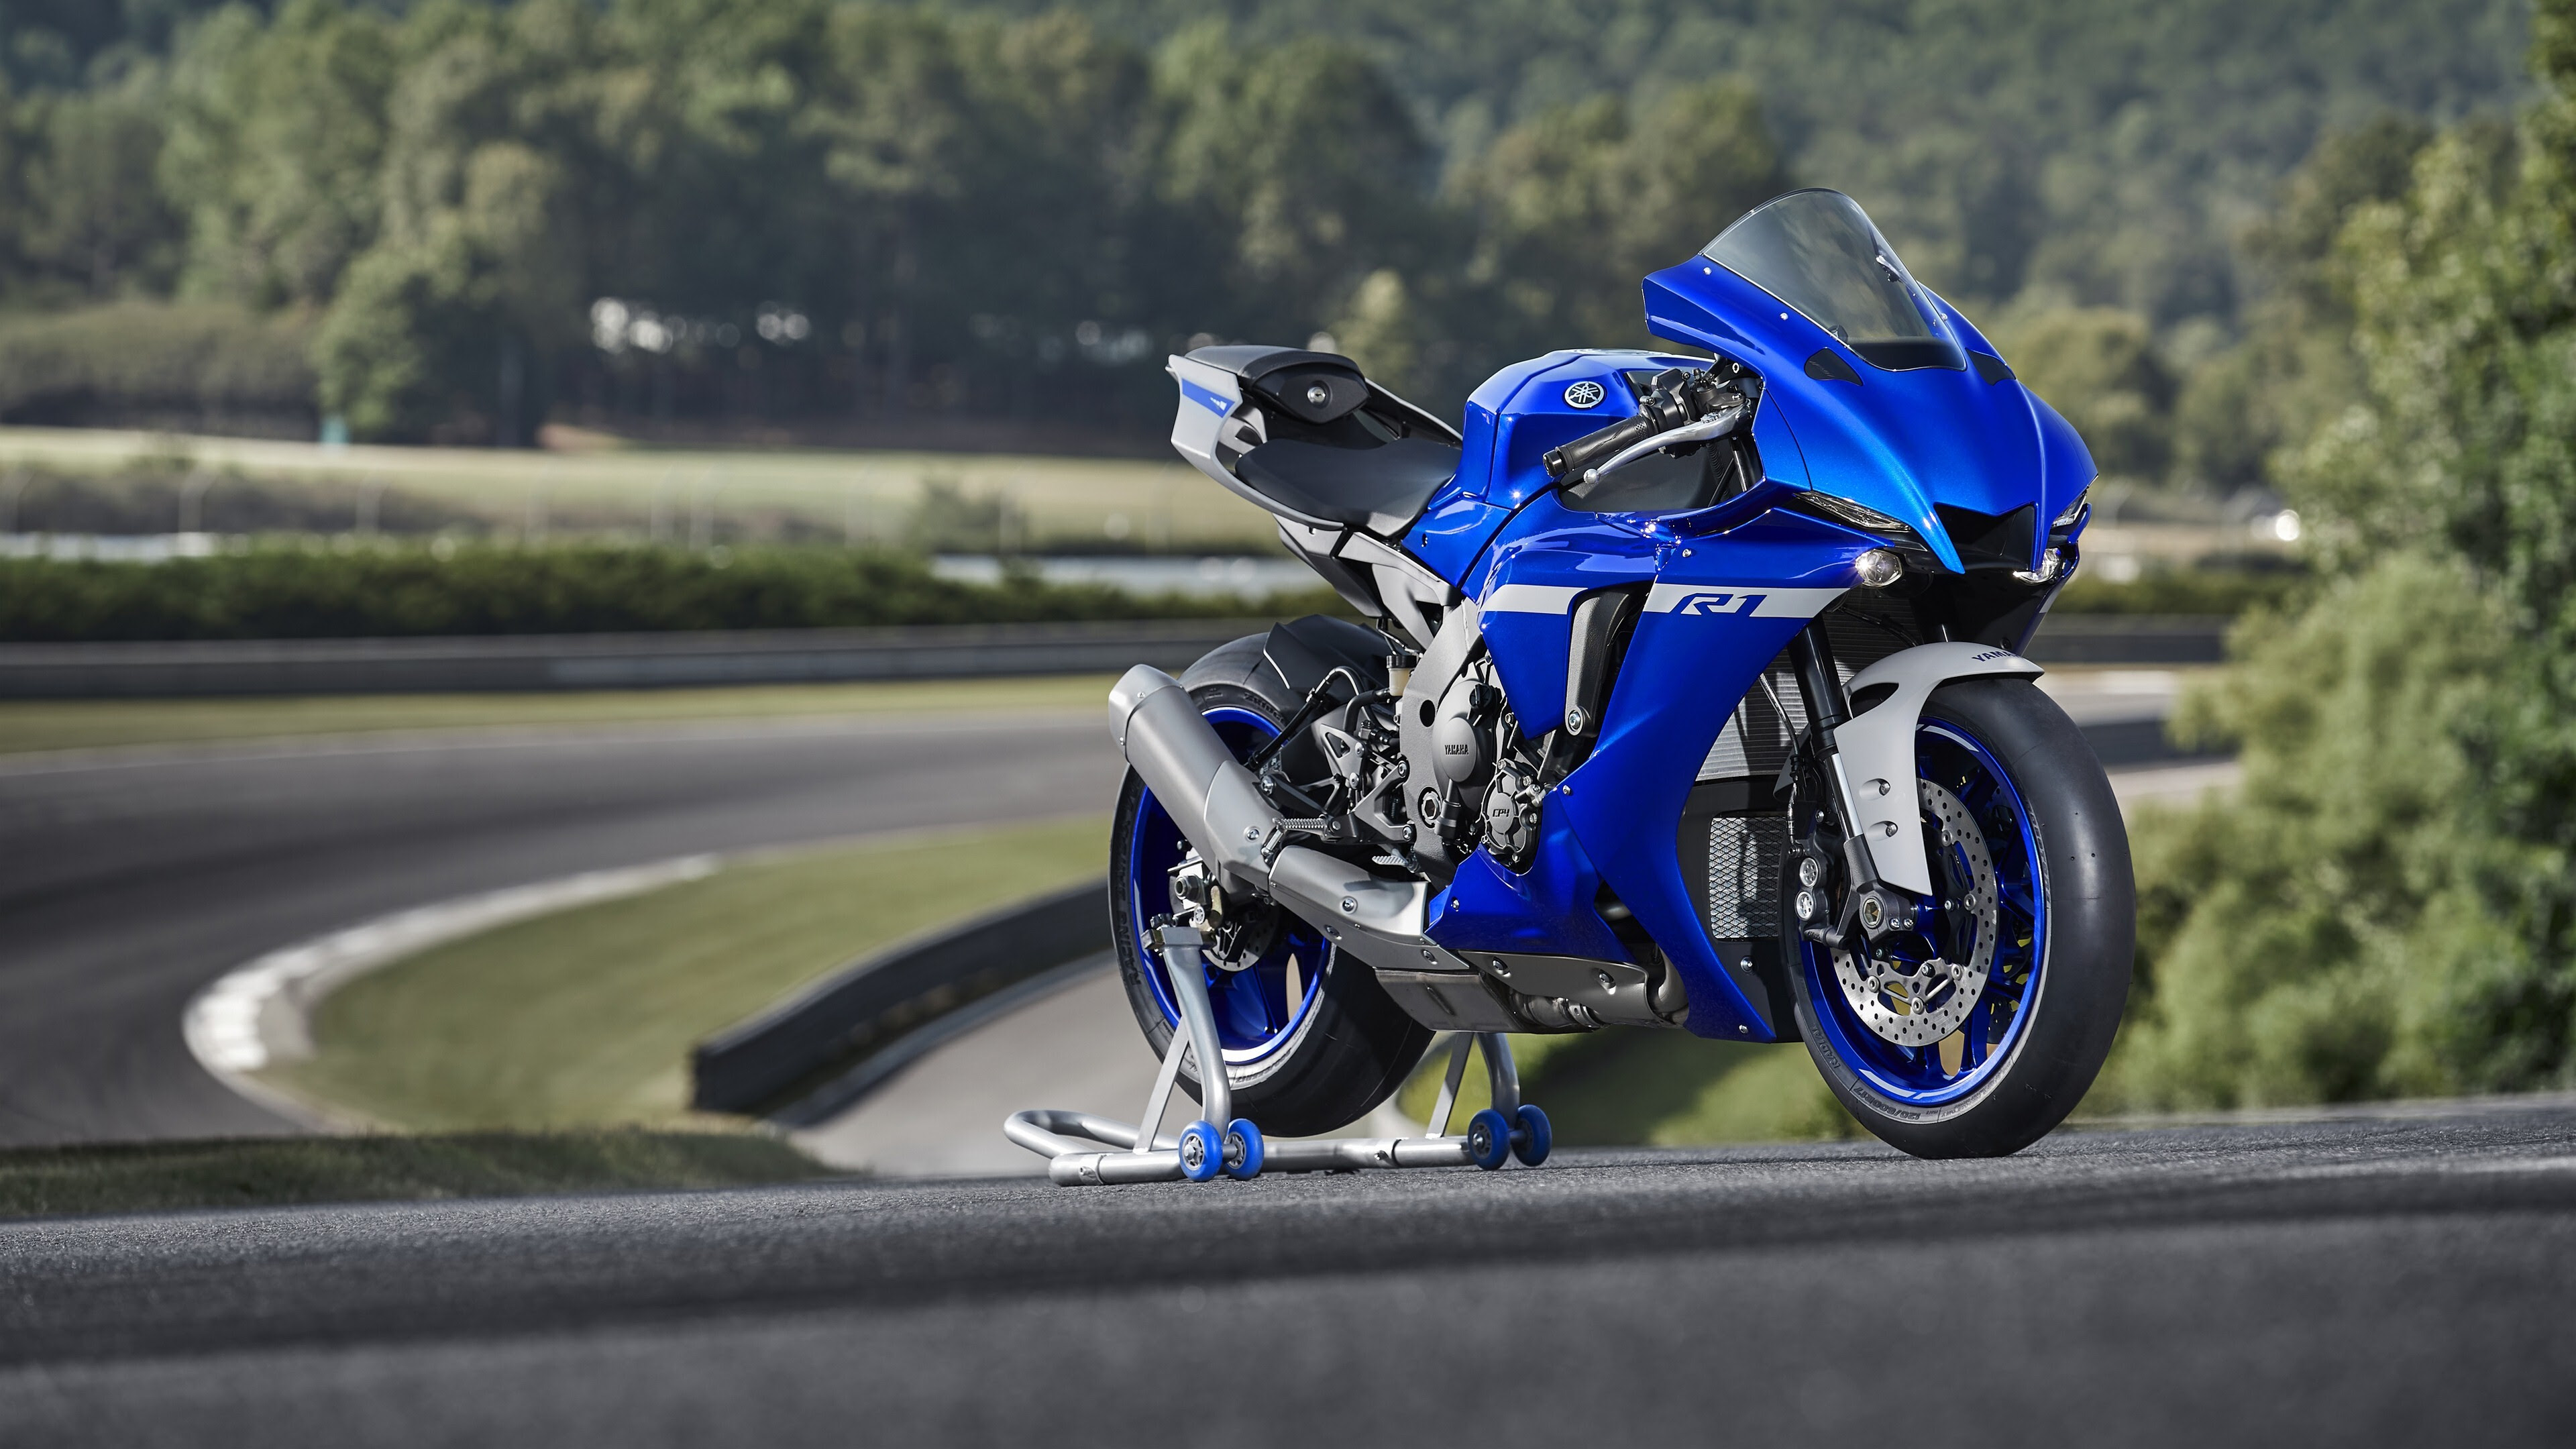 Download 98 Wallpaper Hd Yamaha HD Terbaru